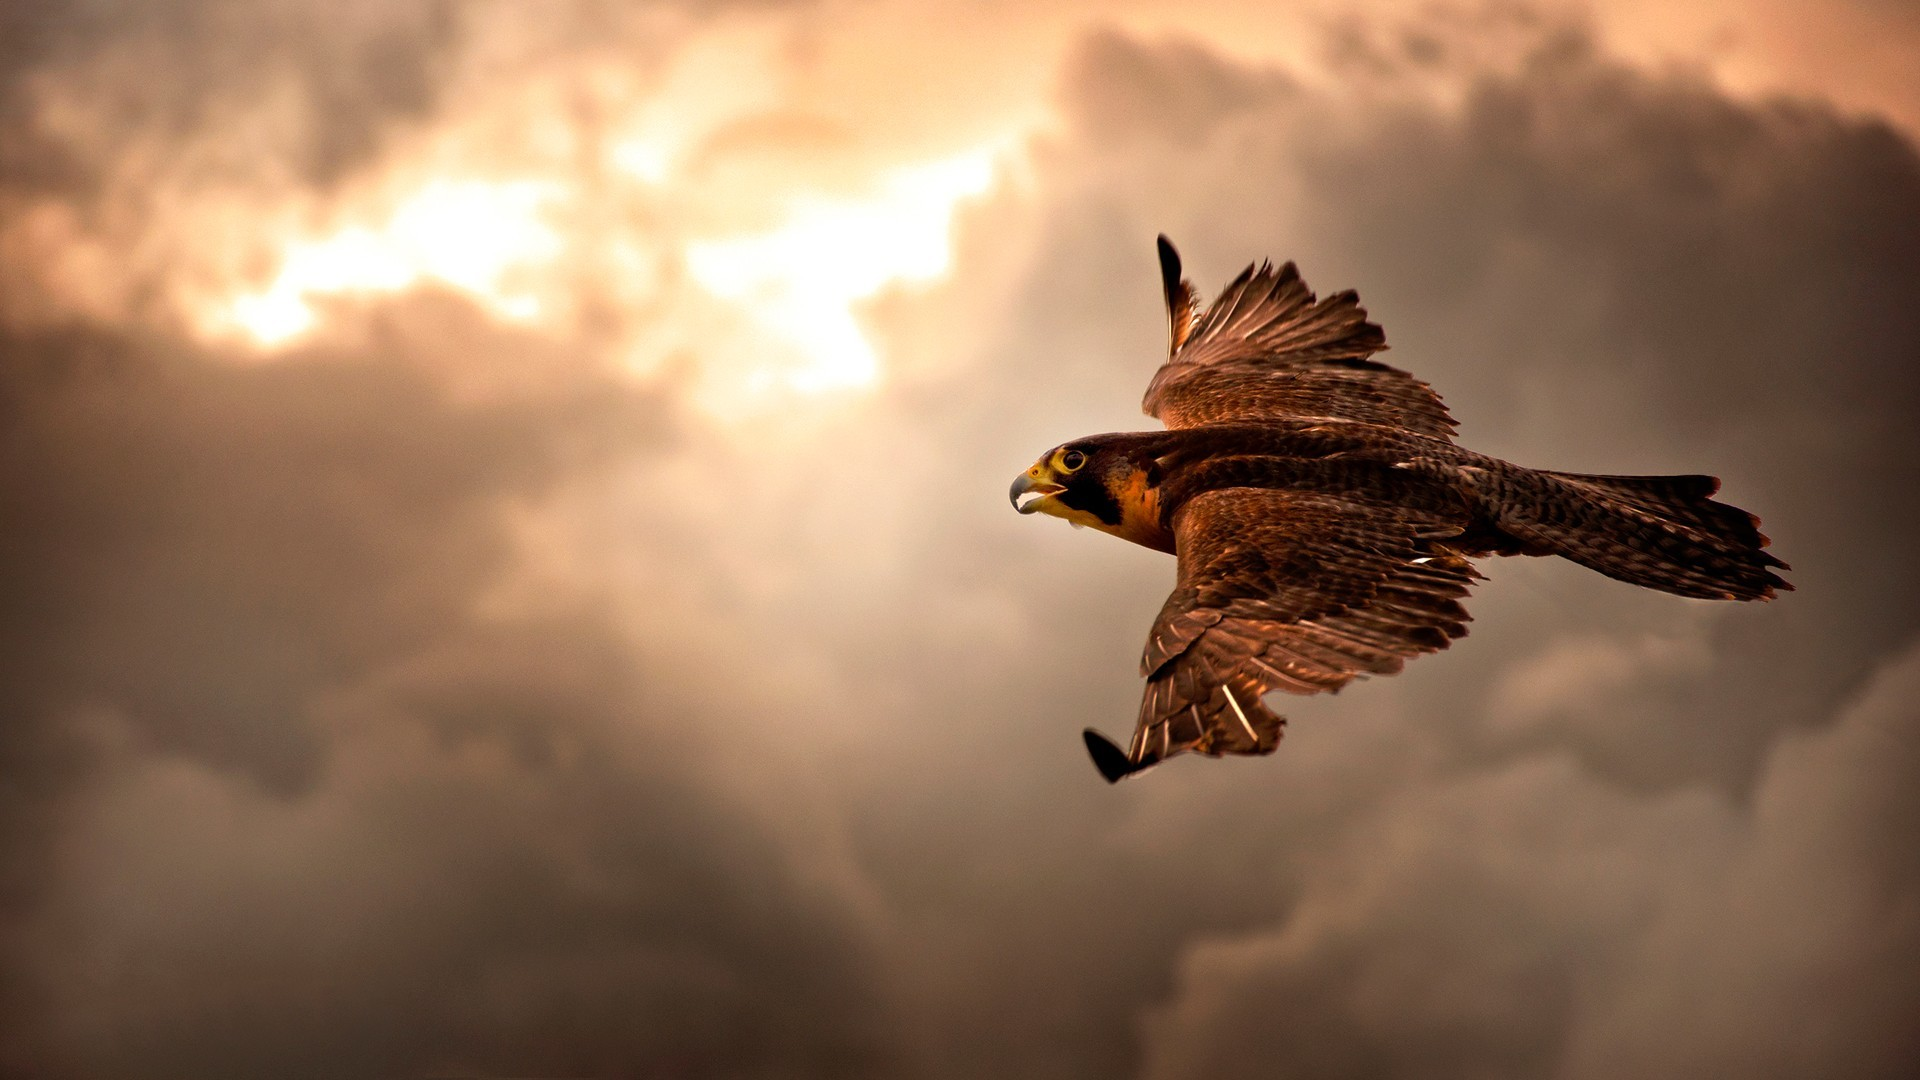 1920x1080 desktop hd eagle pics wallpaper